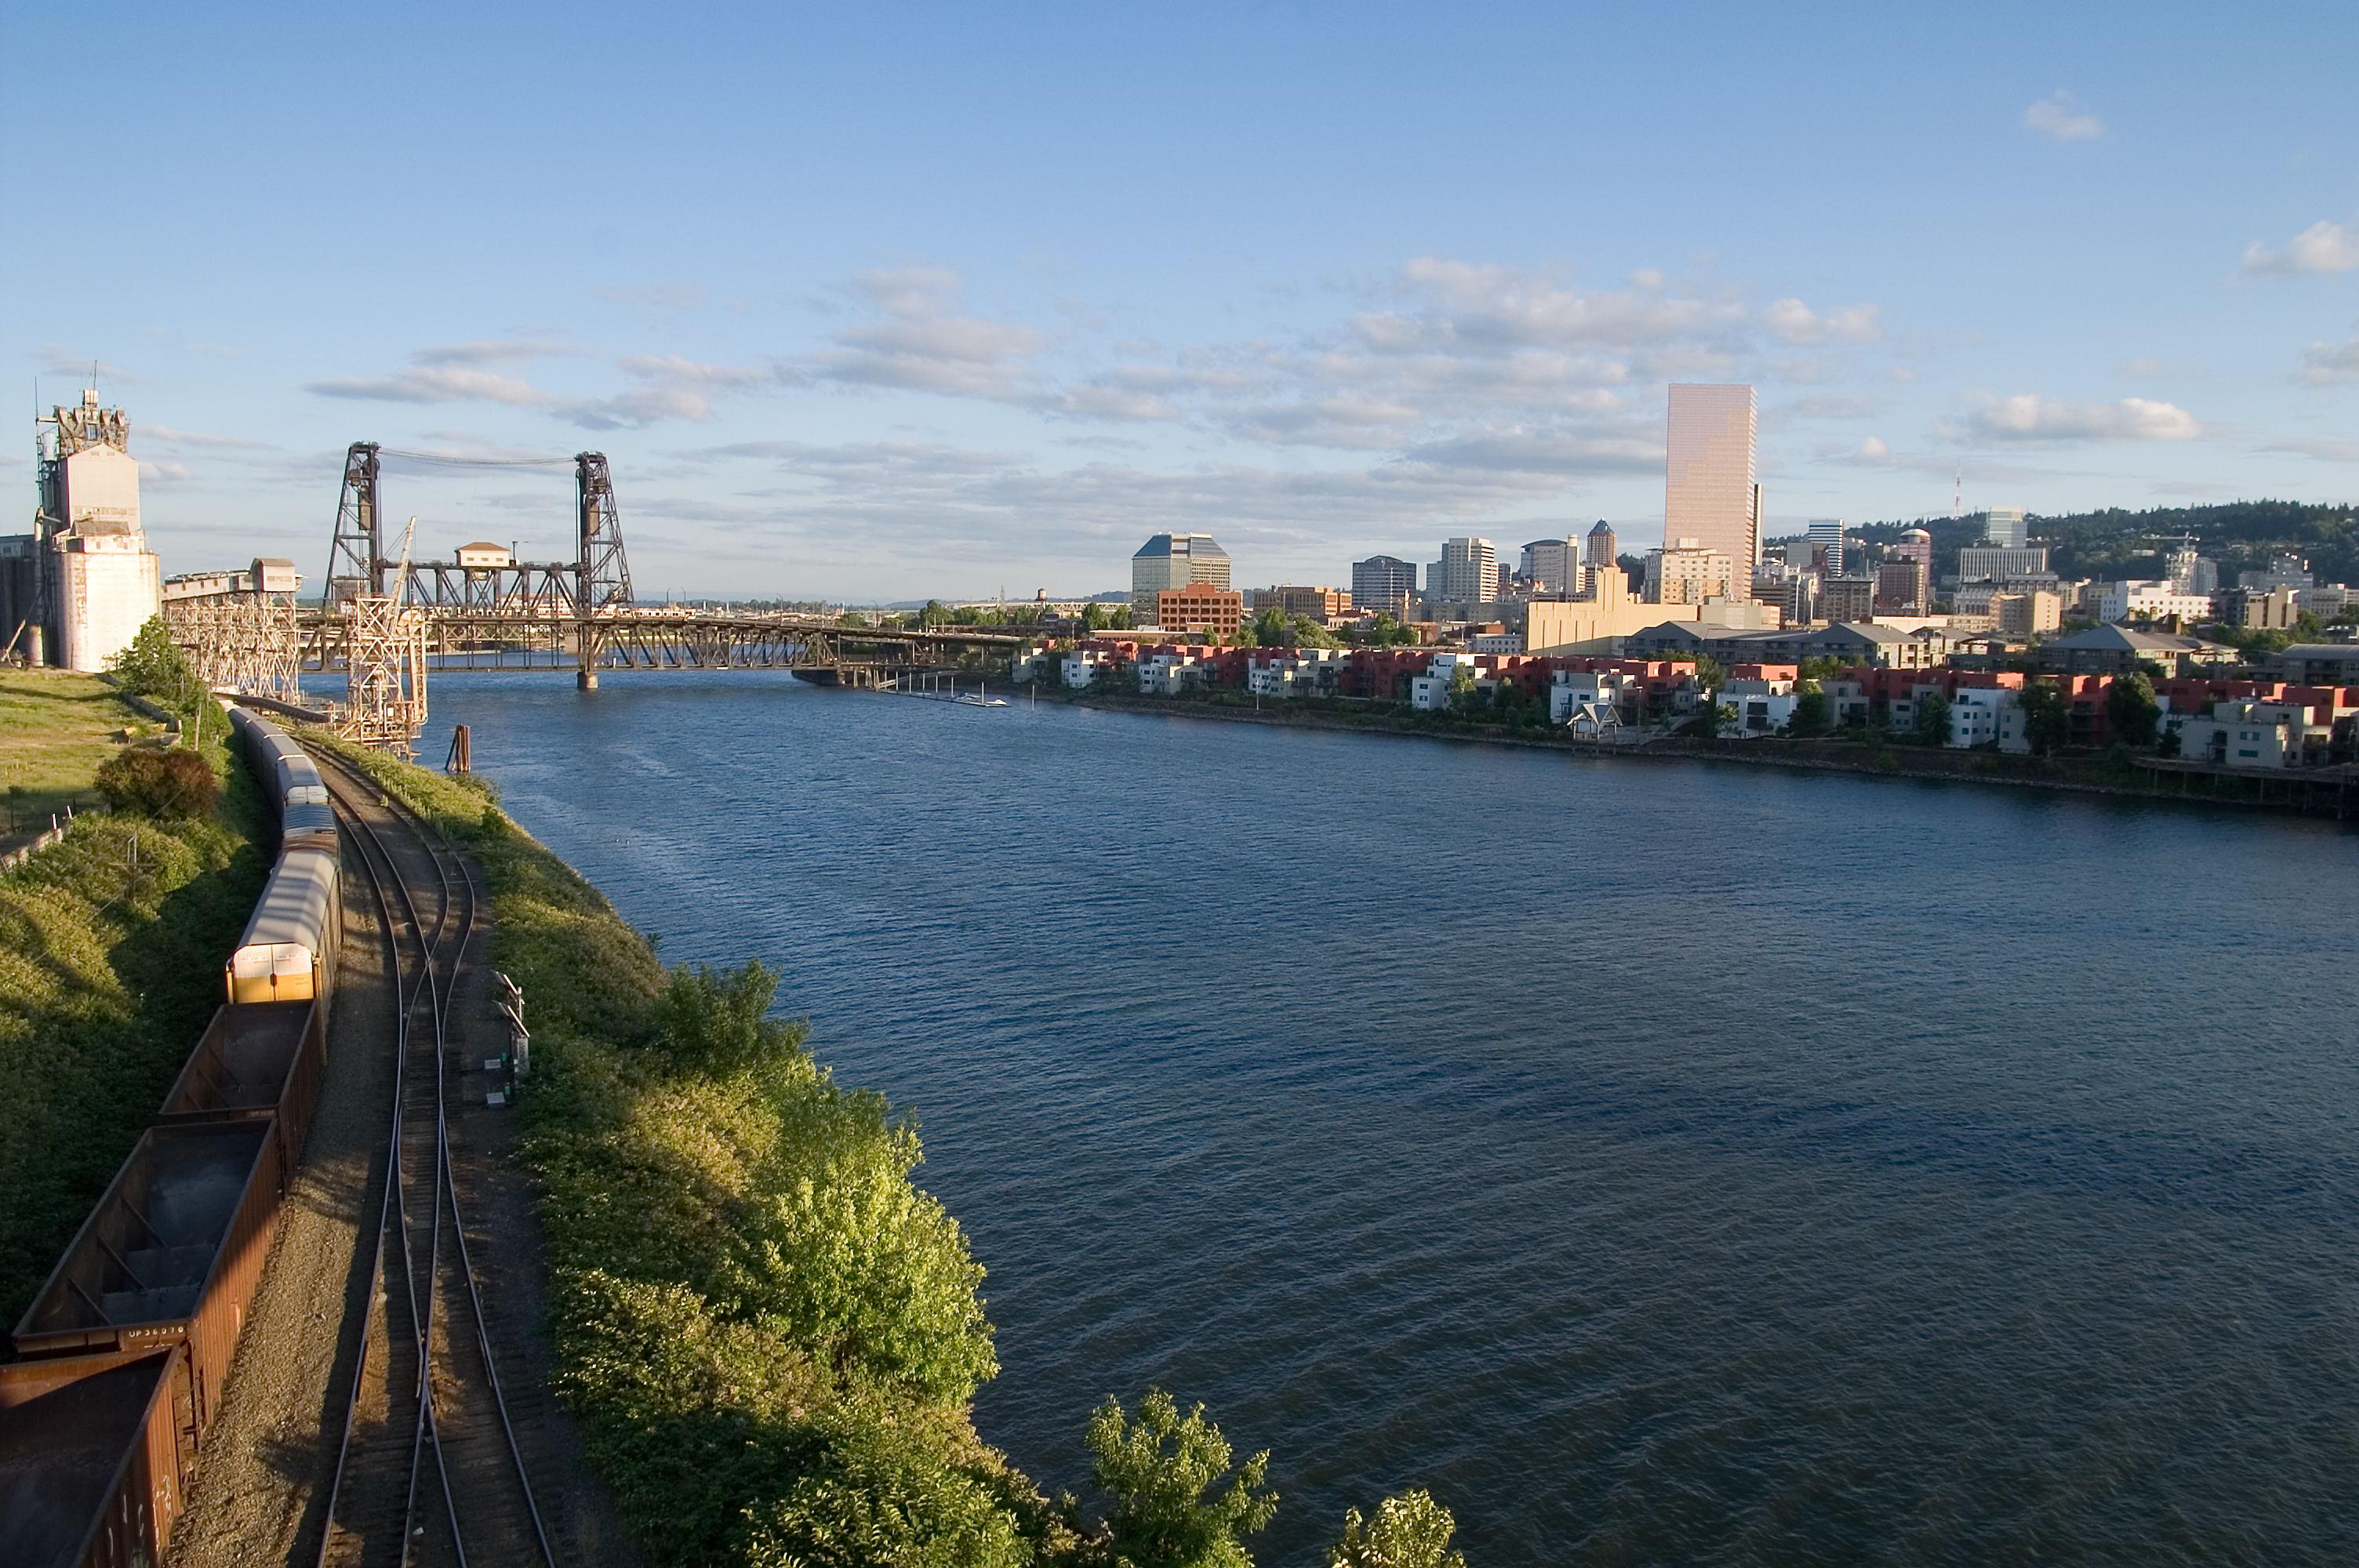 ecopol project portland state university the willamette river and soil contamination. Black Bedroom Furniture Sets. Home Design Ideas